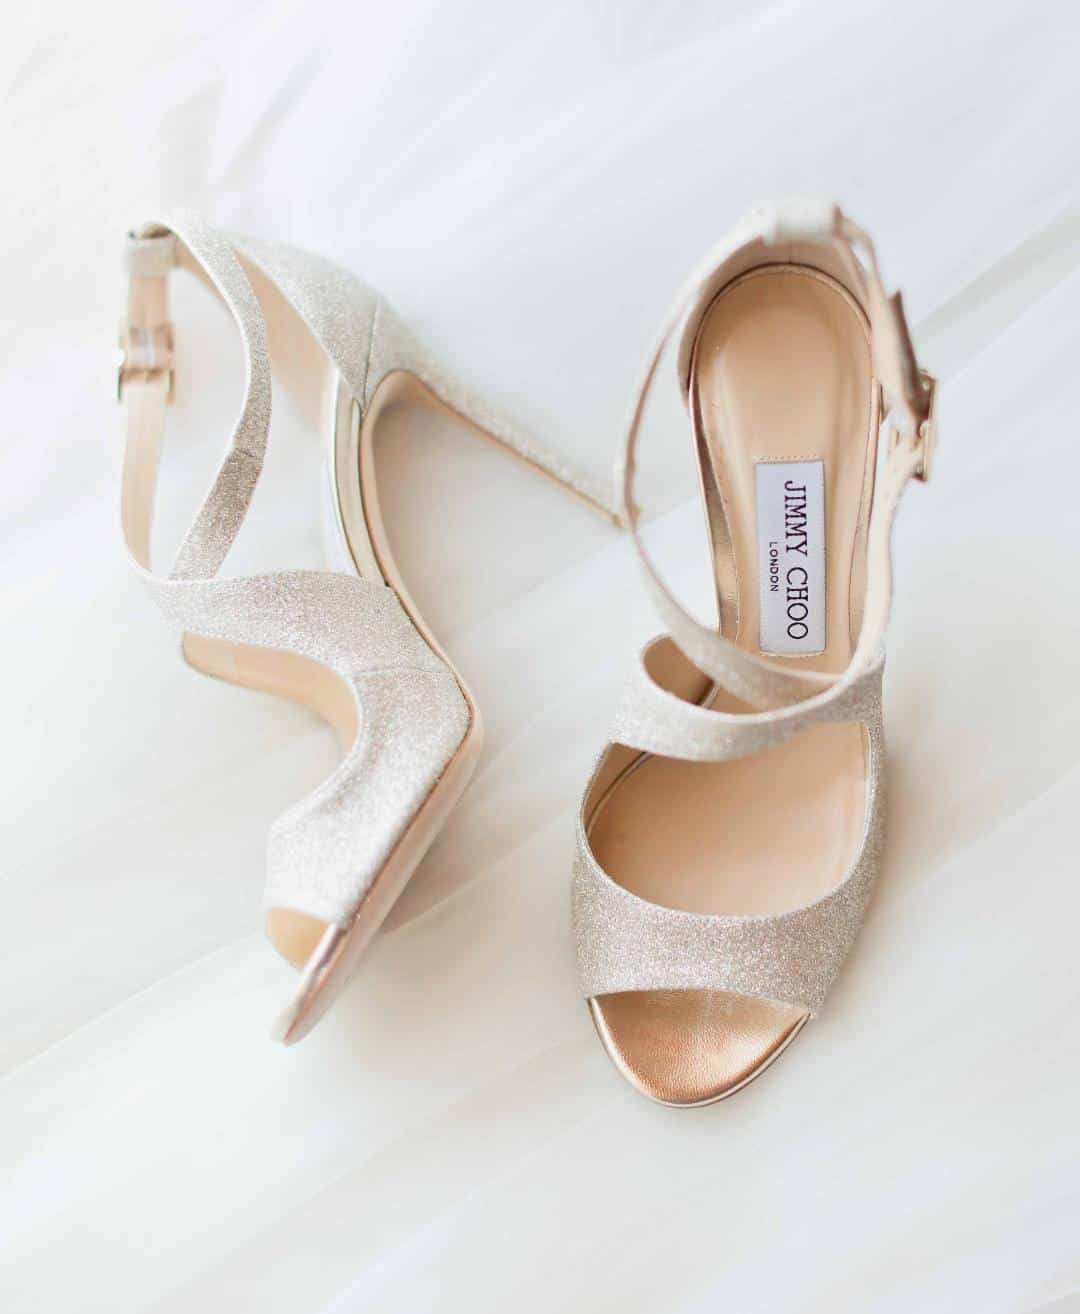 Sposa Scarpe.Stile Sposa Archives Wedding Planner Roma